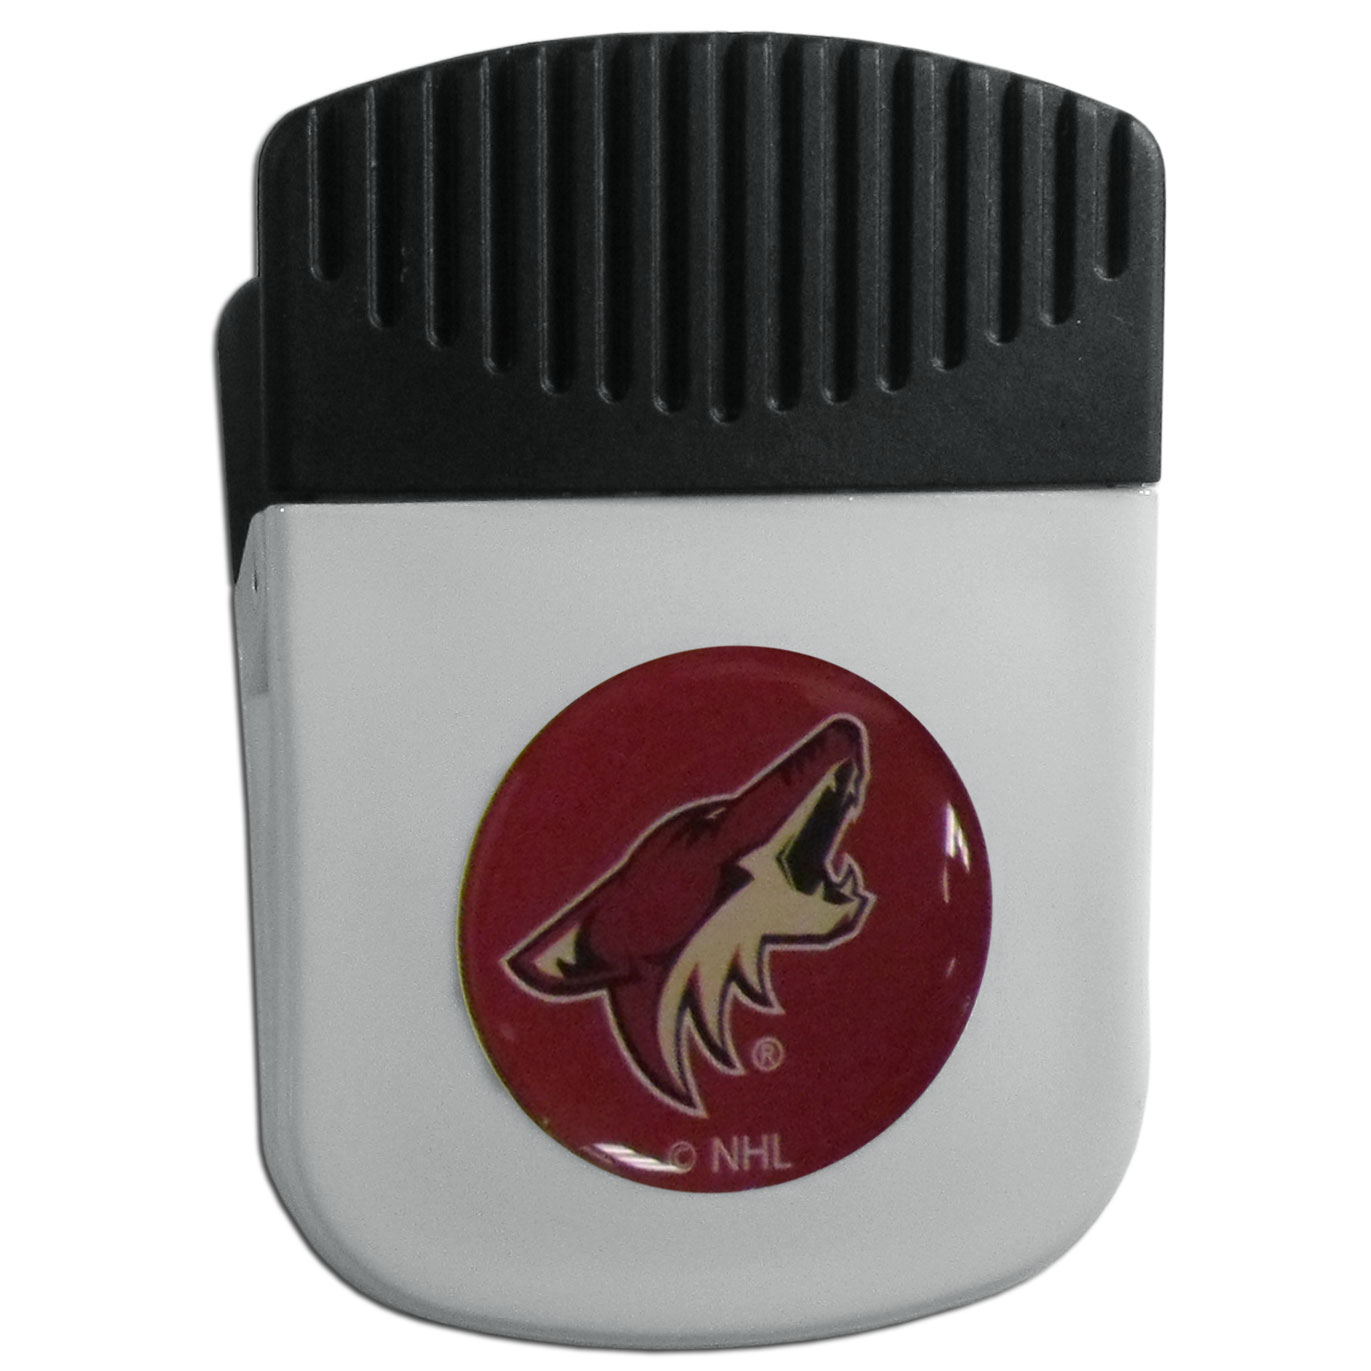 Arizona Coyotes® Chip Clip Magnet - Use this attractive clip magnet to hold memos, photos or appointment cards on the fridge or take it down keep use it to clip bags shut. The magnet features a domed Arizona Coyotes® logo.